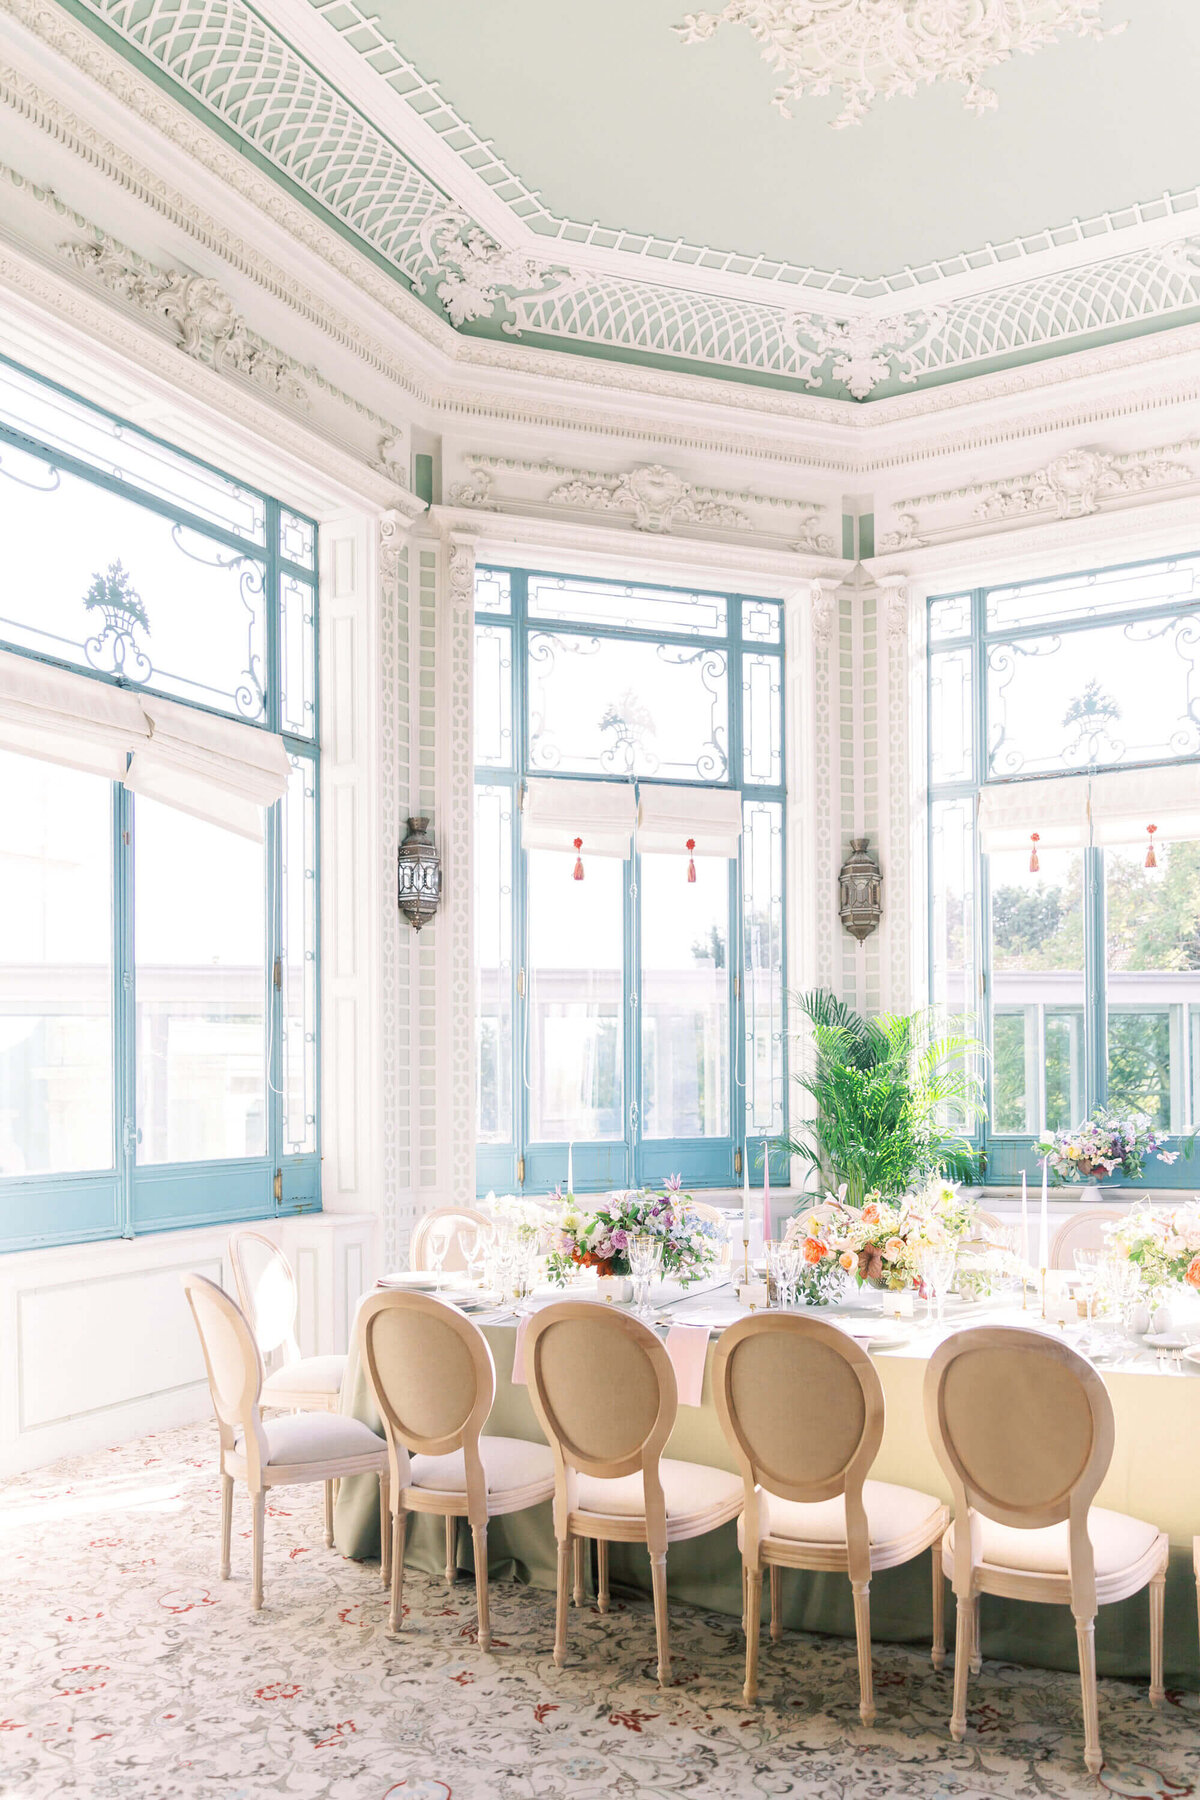 Intimate-Wedding-venue-in-lisbon-splendida-weddings-wedding-planner-luxury-style